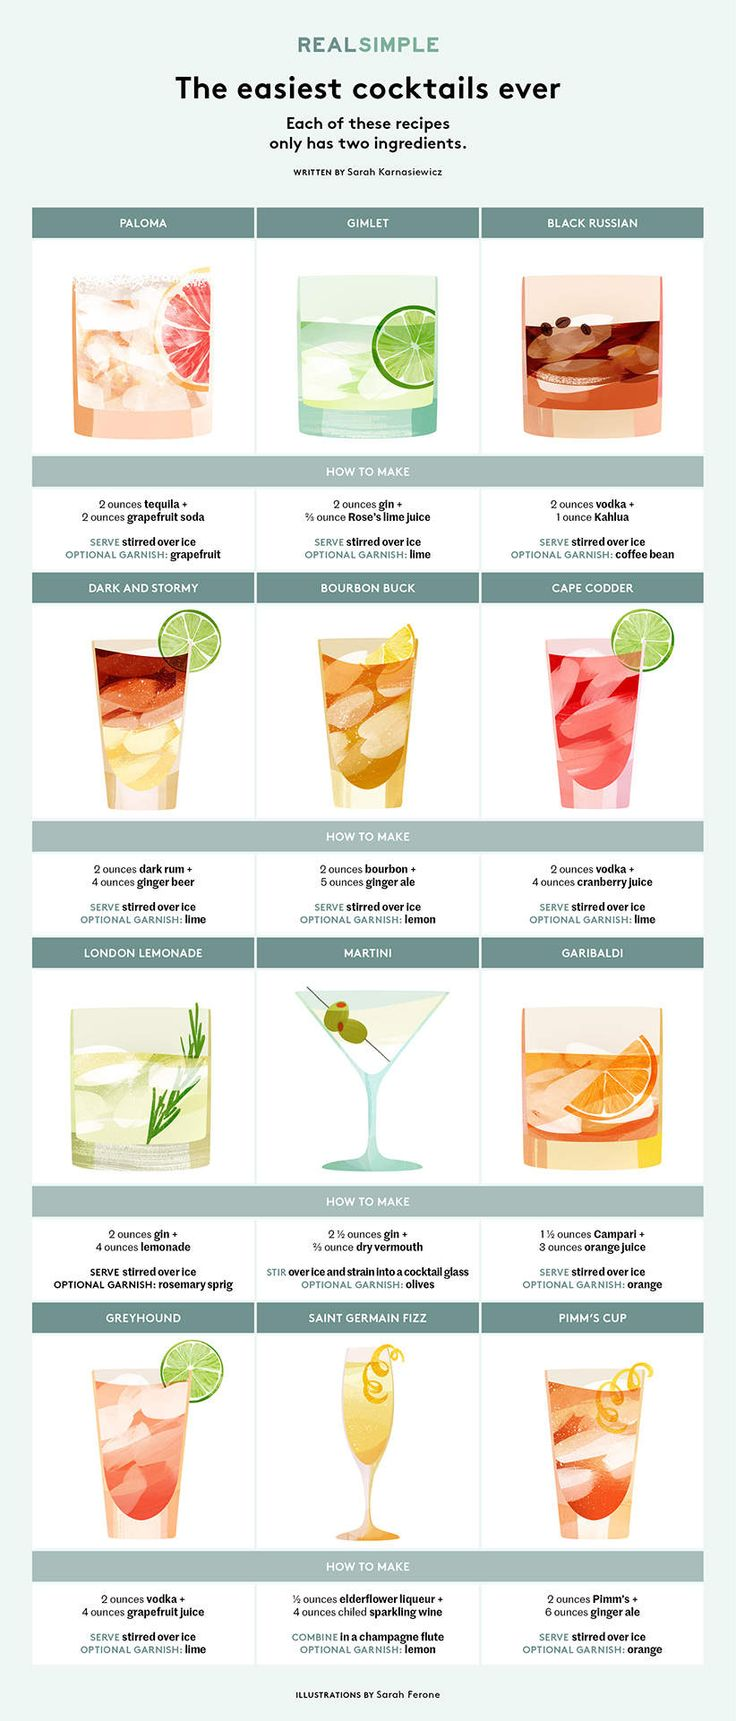 12 Easy Two-Ingredient Cocktails